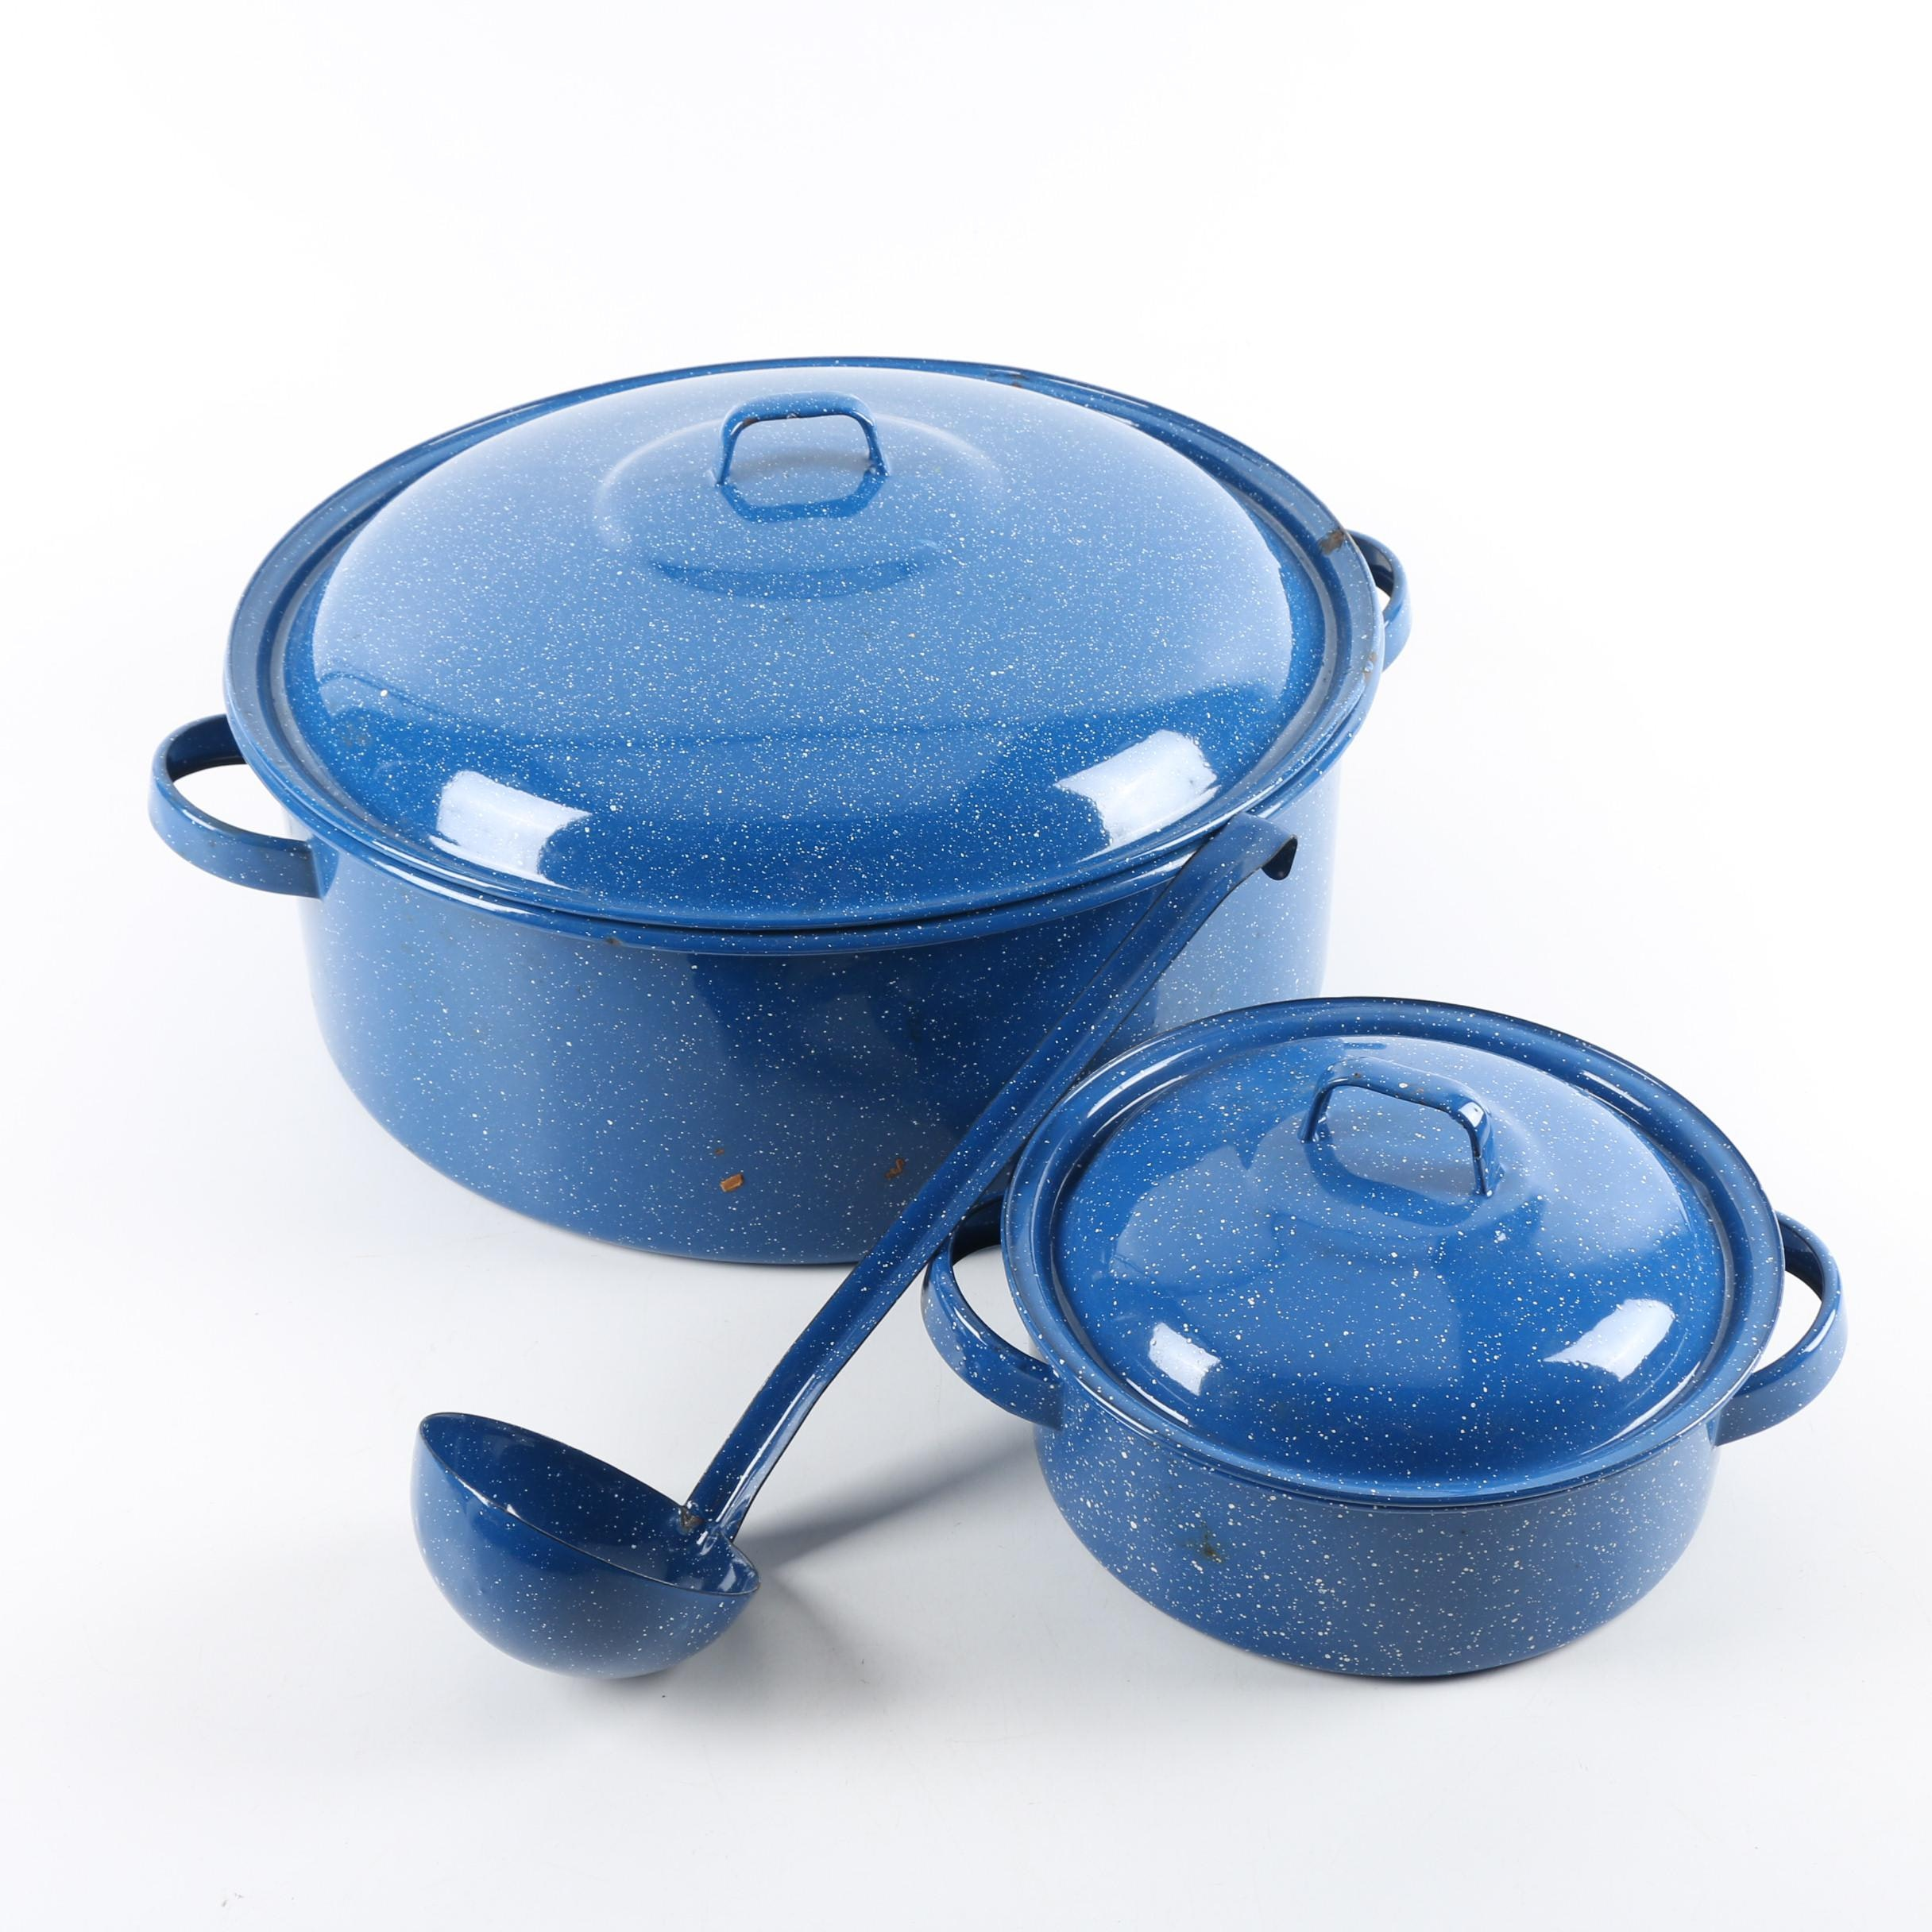 Blue Speckled Enamel Cookware